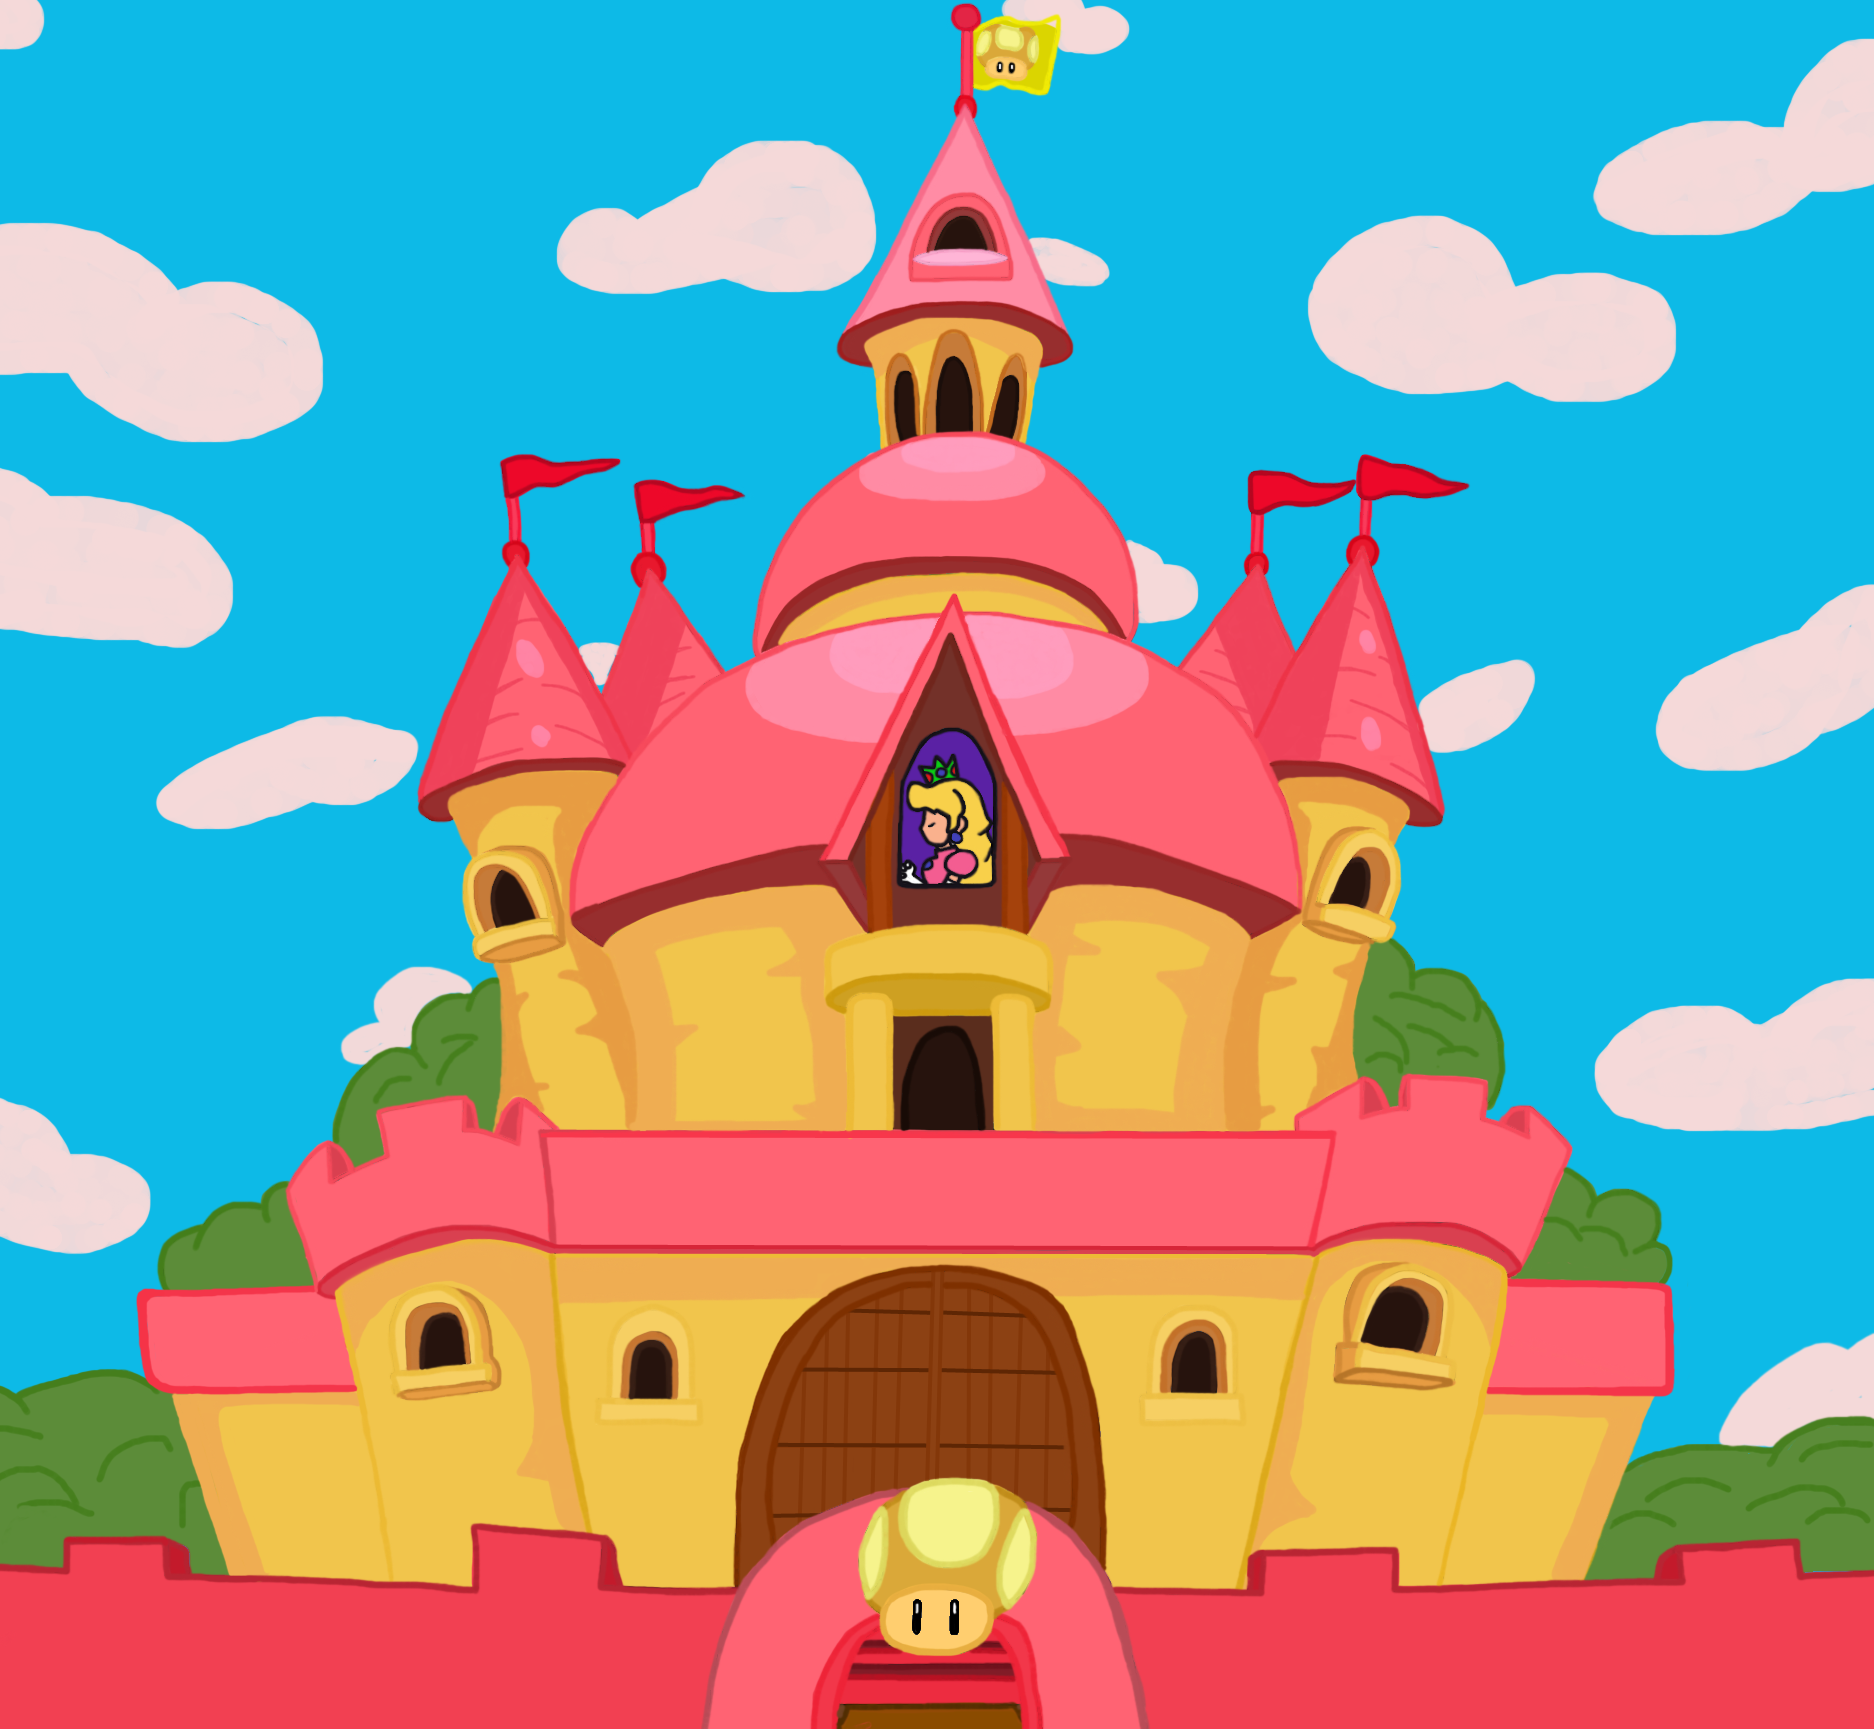 Princess Peach S Castle By Ny Disney Fan1955 On Deviantart